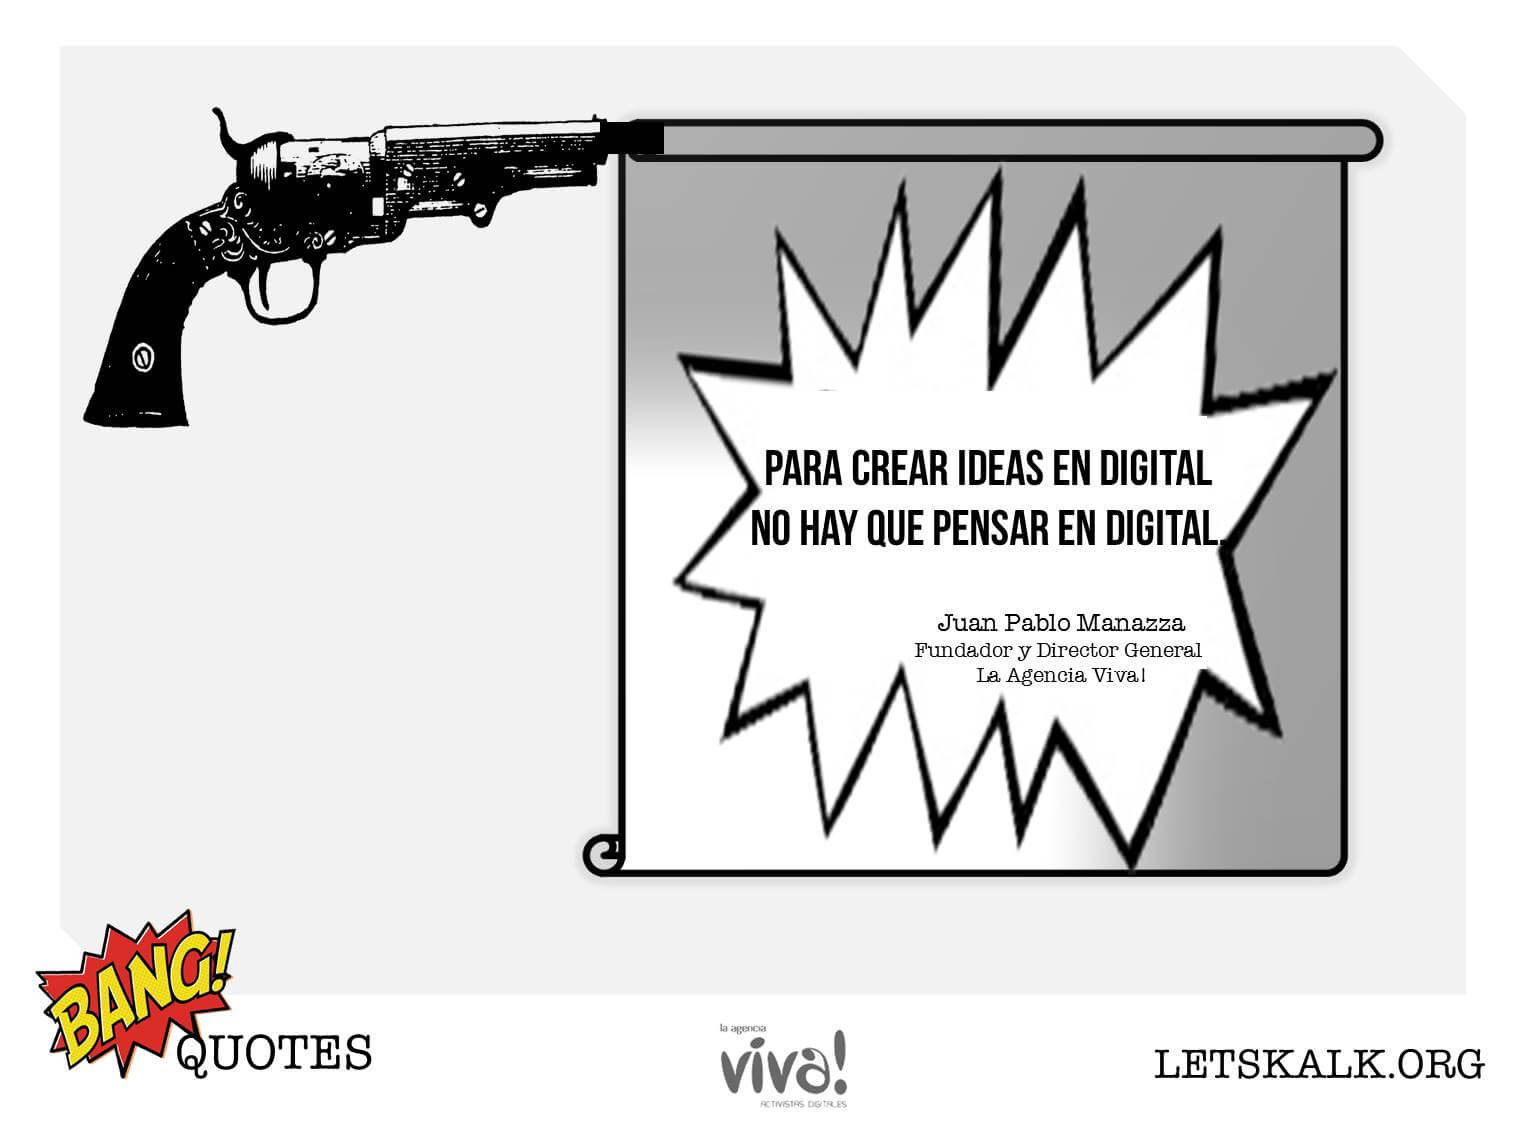 "#BangQuotes: ""Para crear ideas en digital no hay que pensar en digital."""